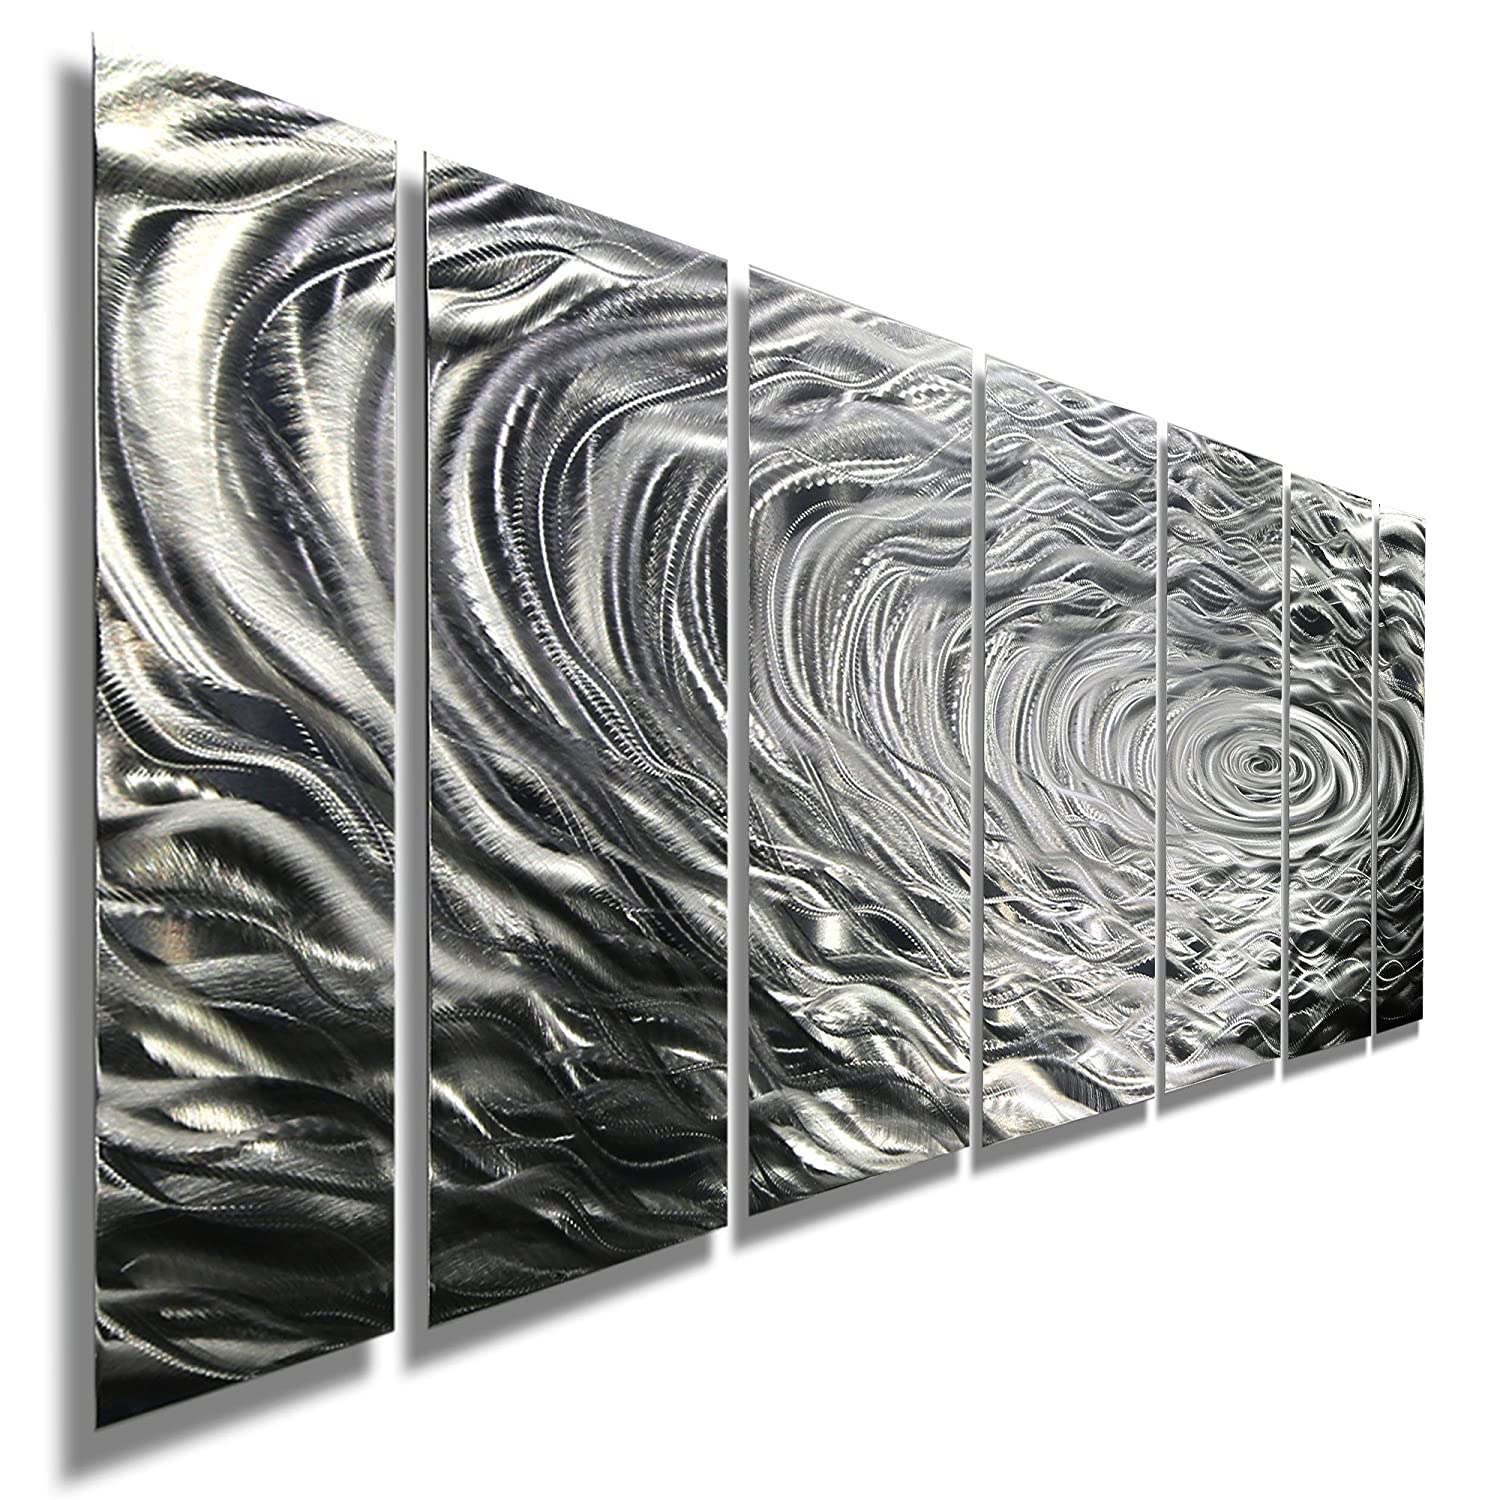 panels metal art and decor good living andrews arts wall sculptures design with stylish